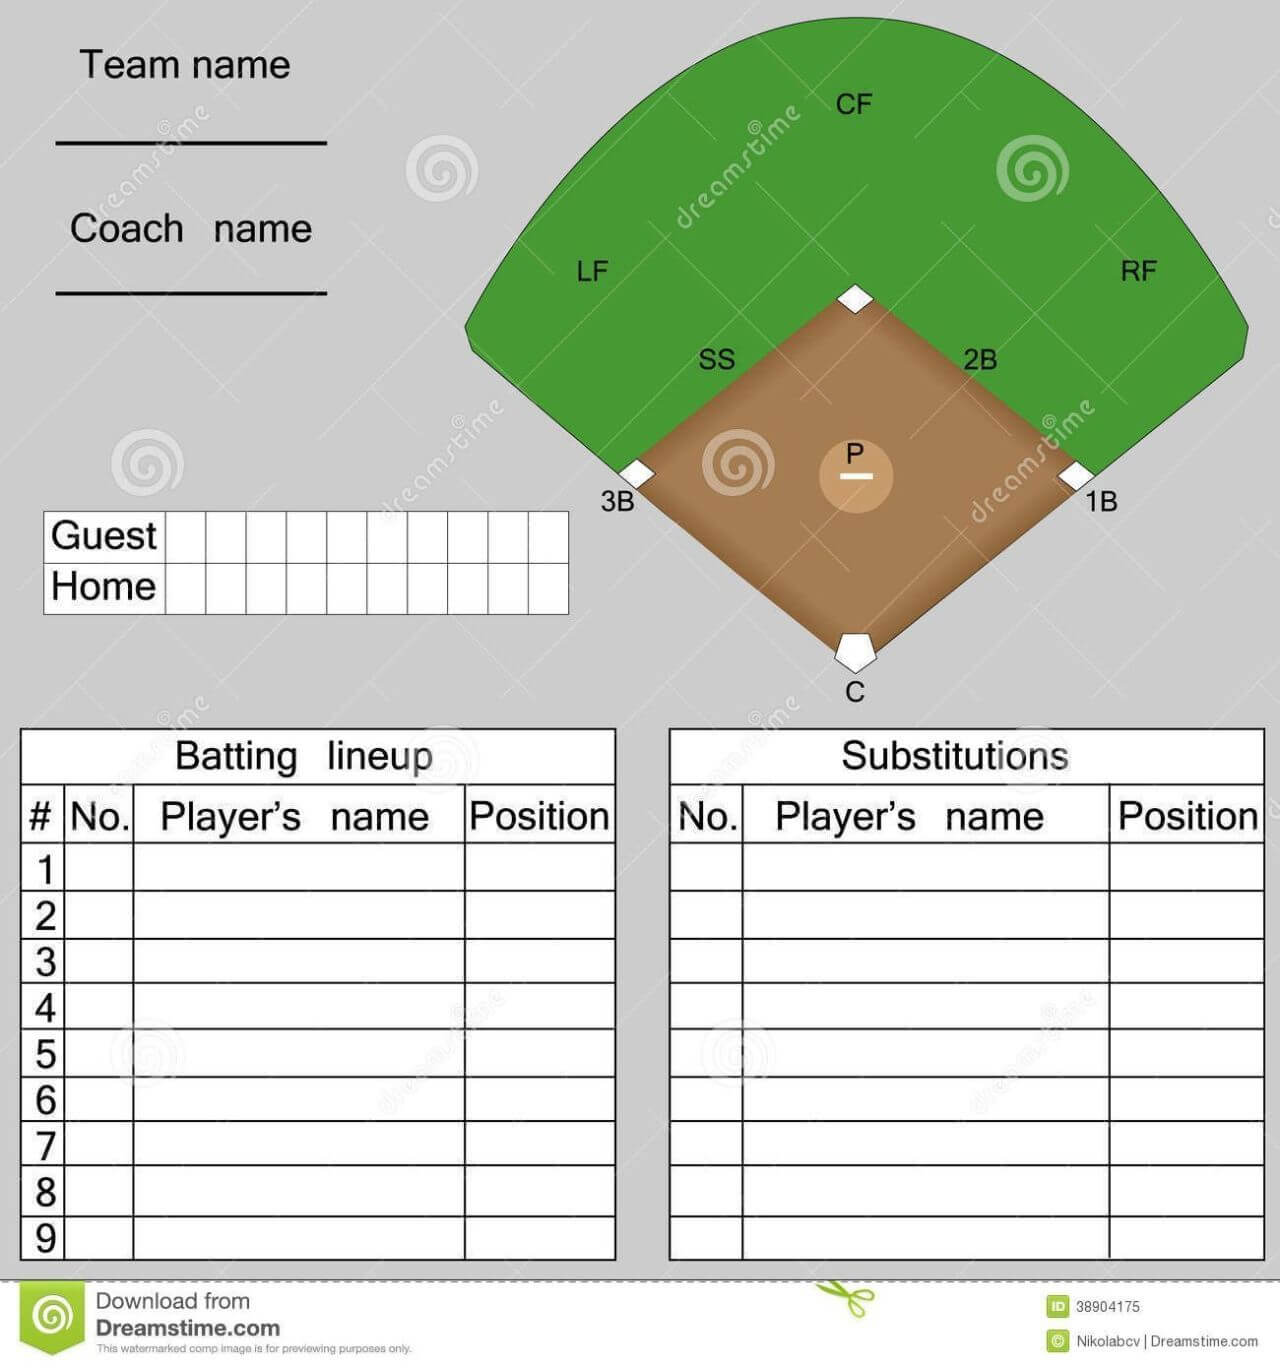 Baseball Lineup Card Template – Free Download | Baseball Inside Dugout Lineup Card Template